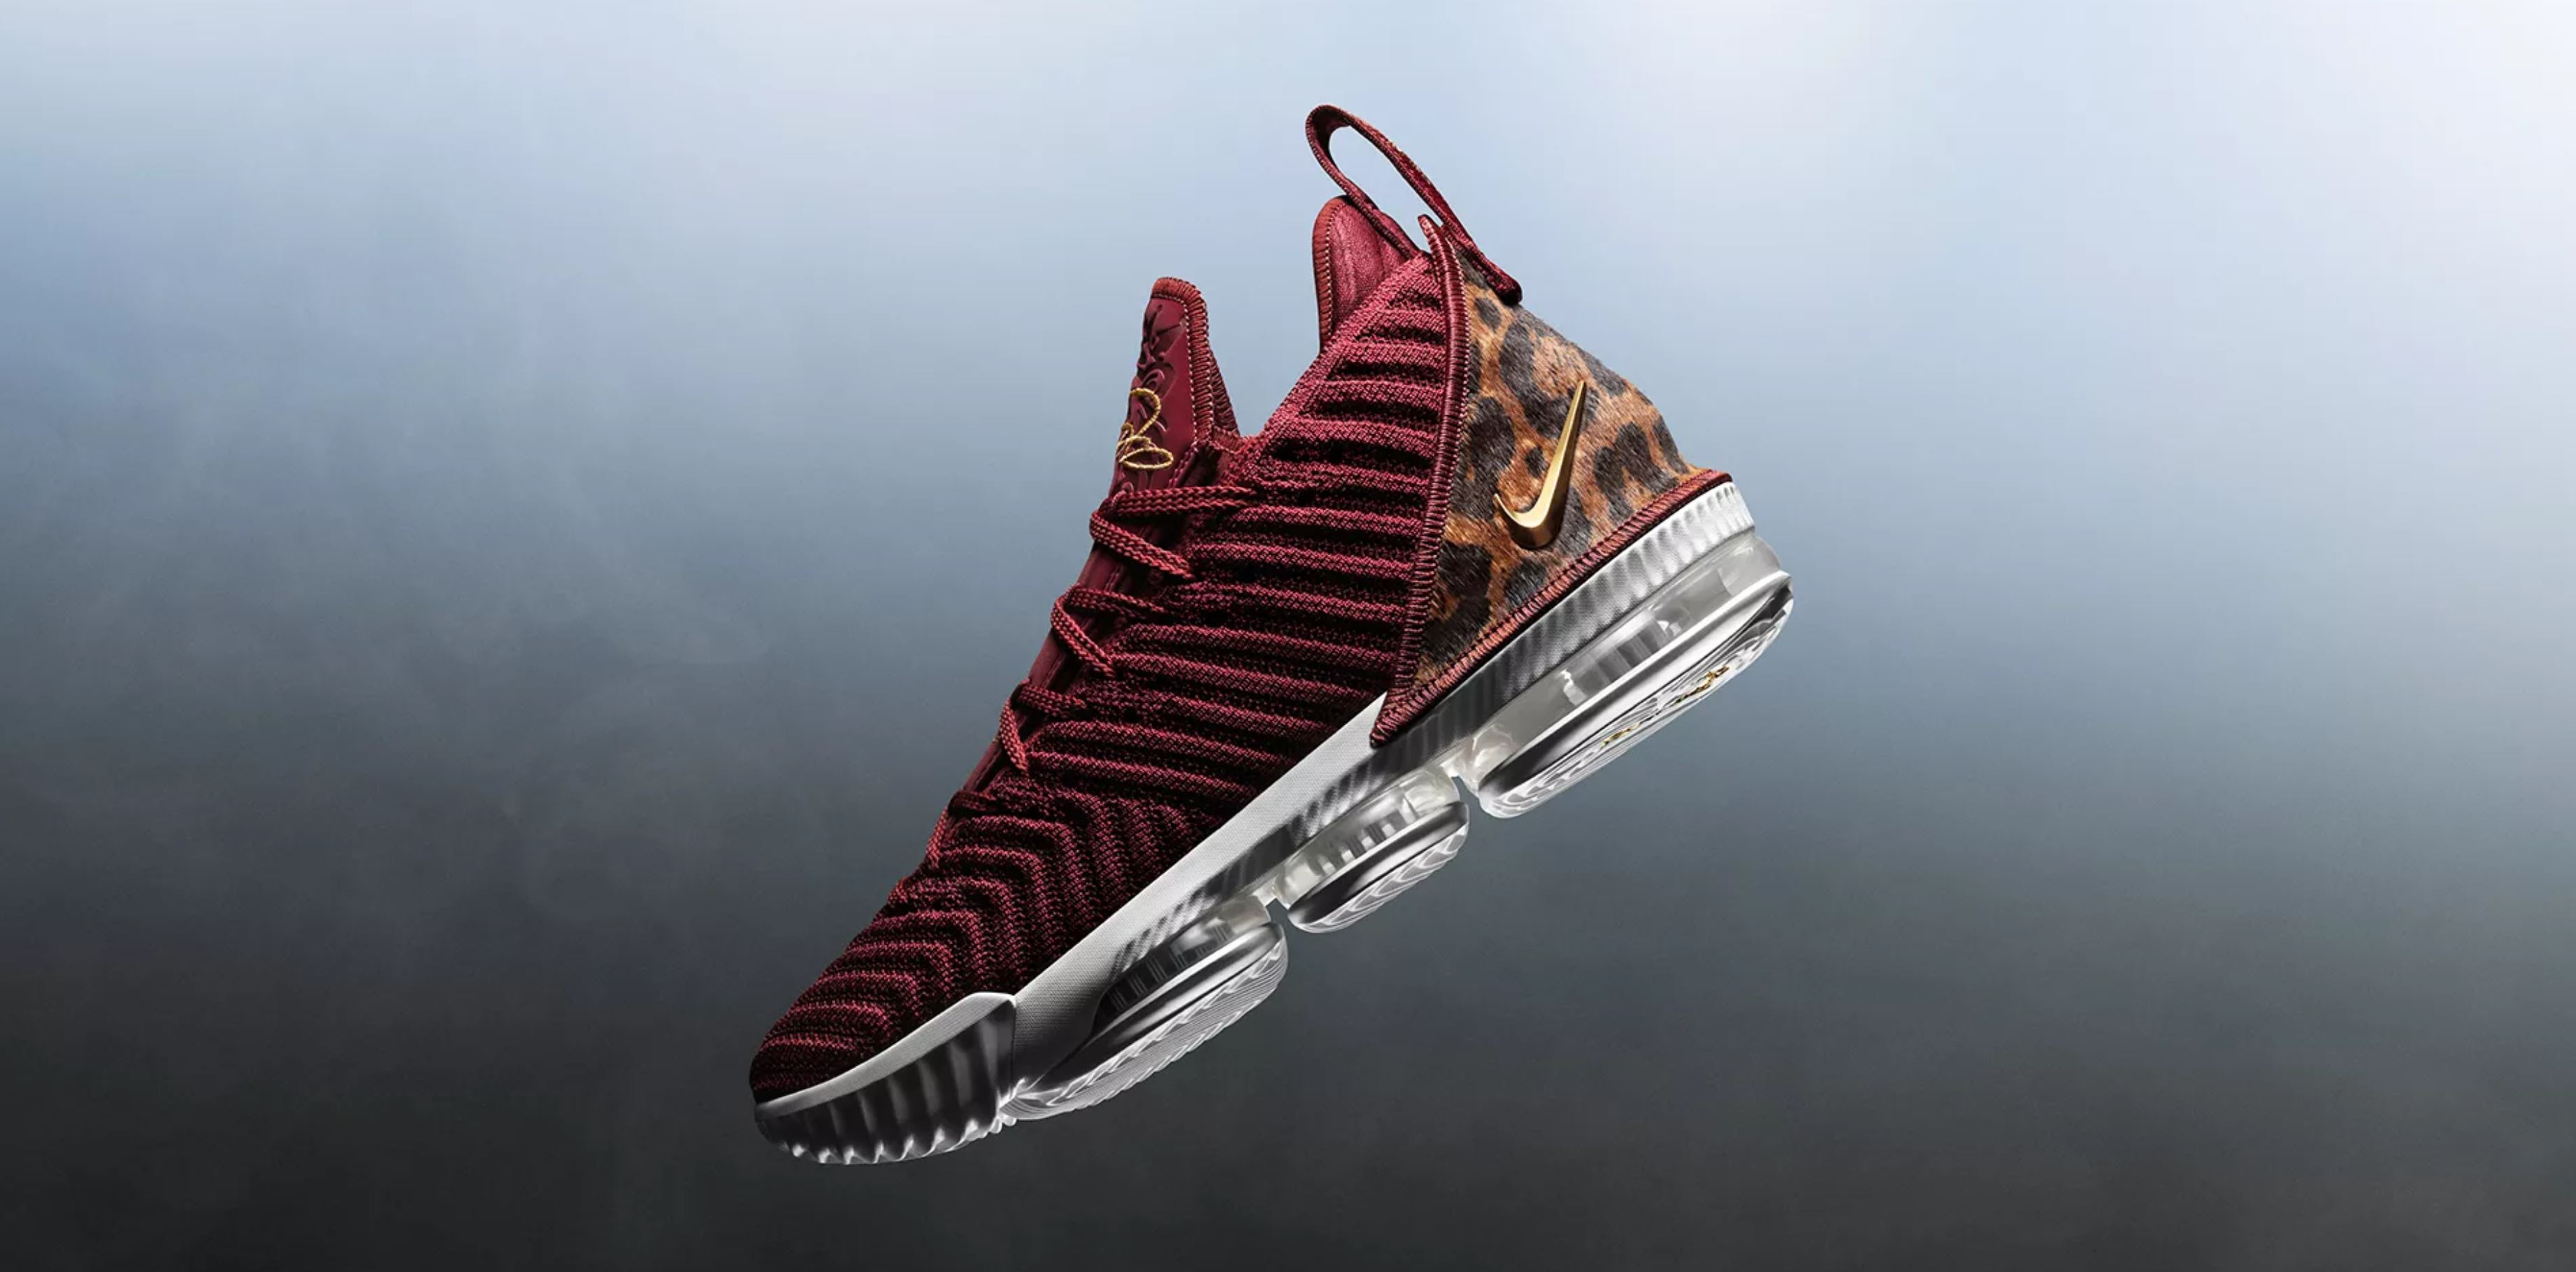 The Nike LeBron 16 'King' Releases Next